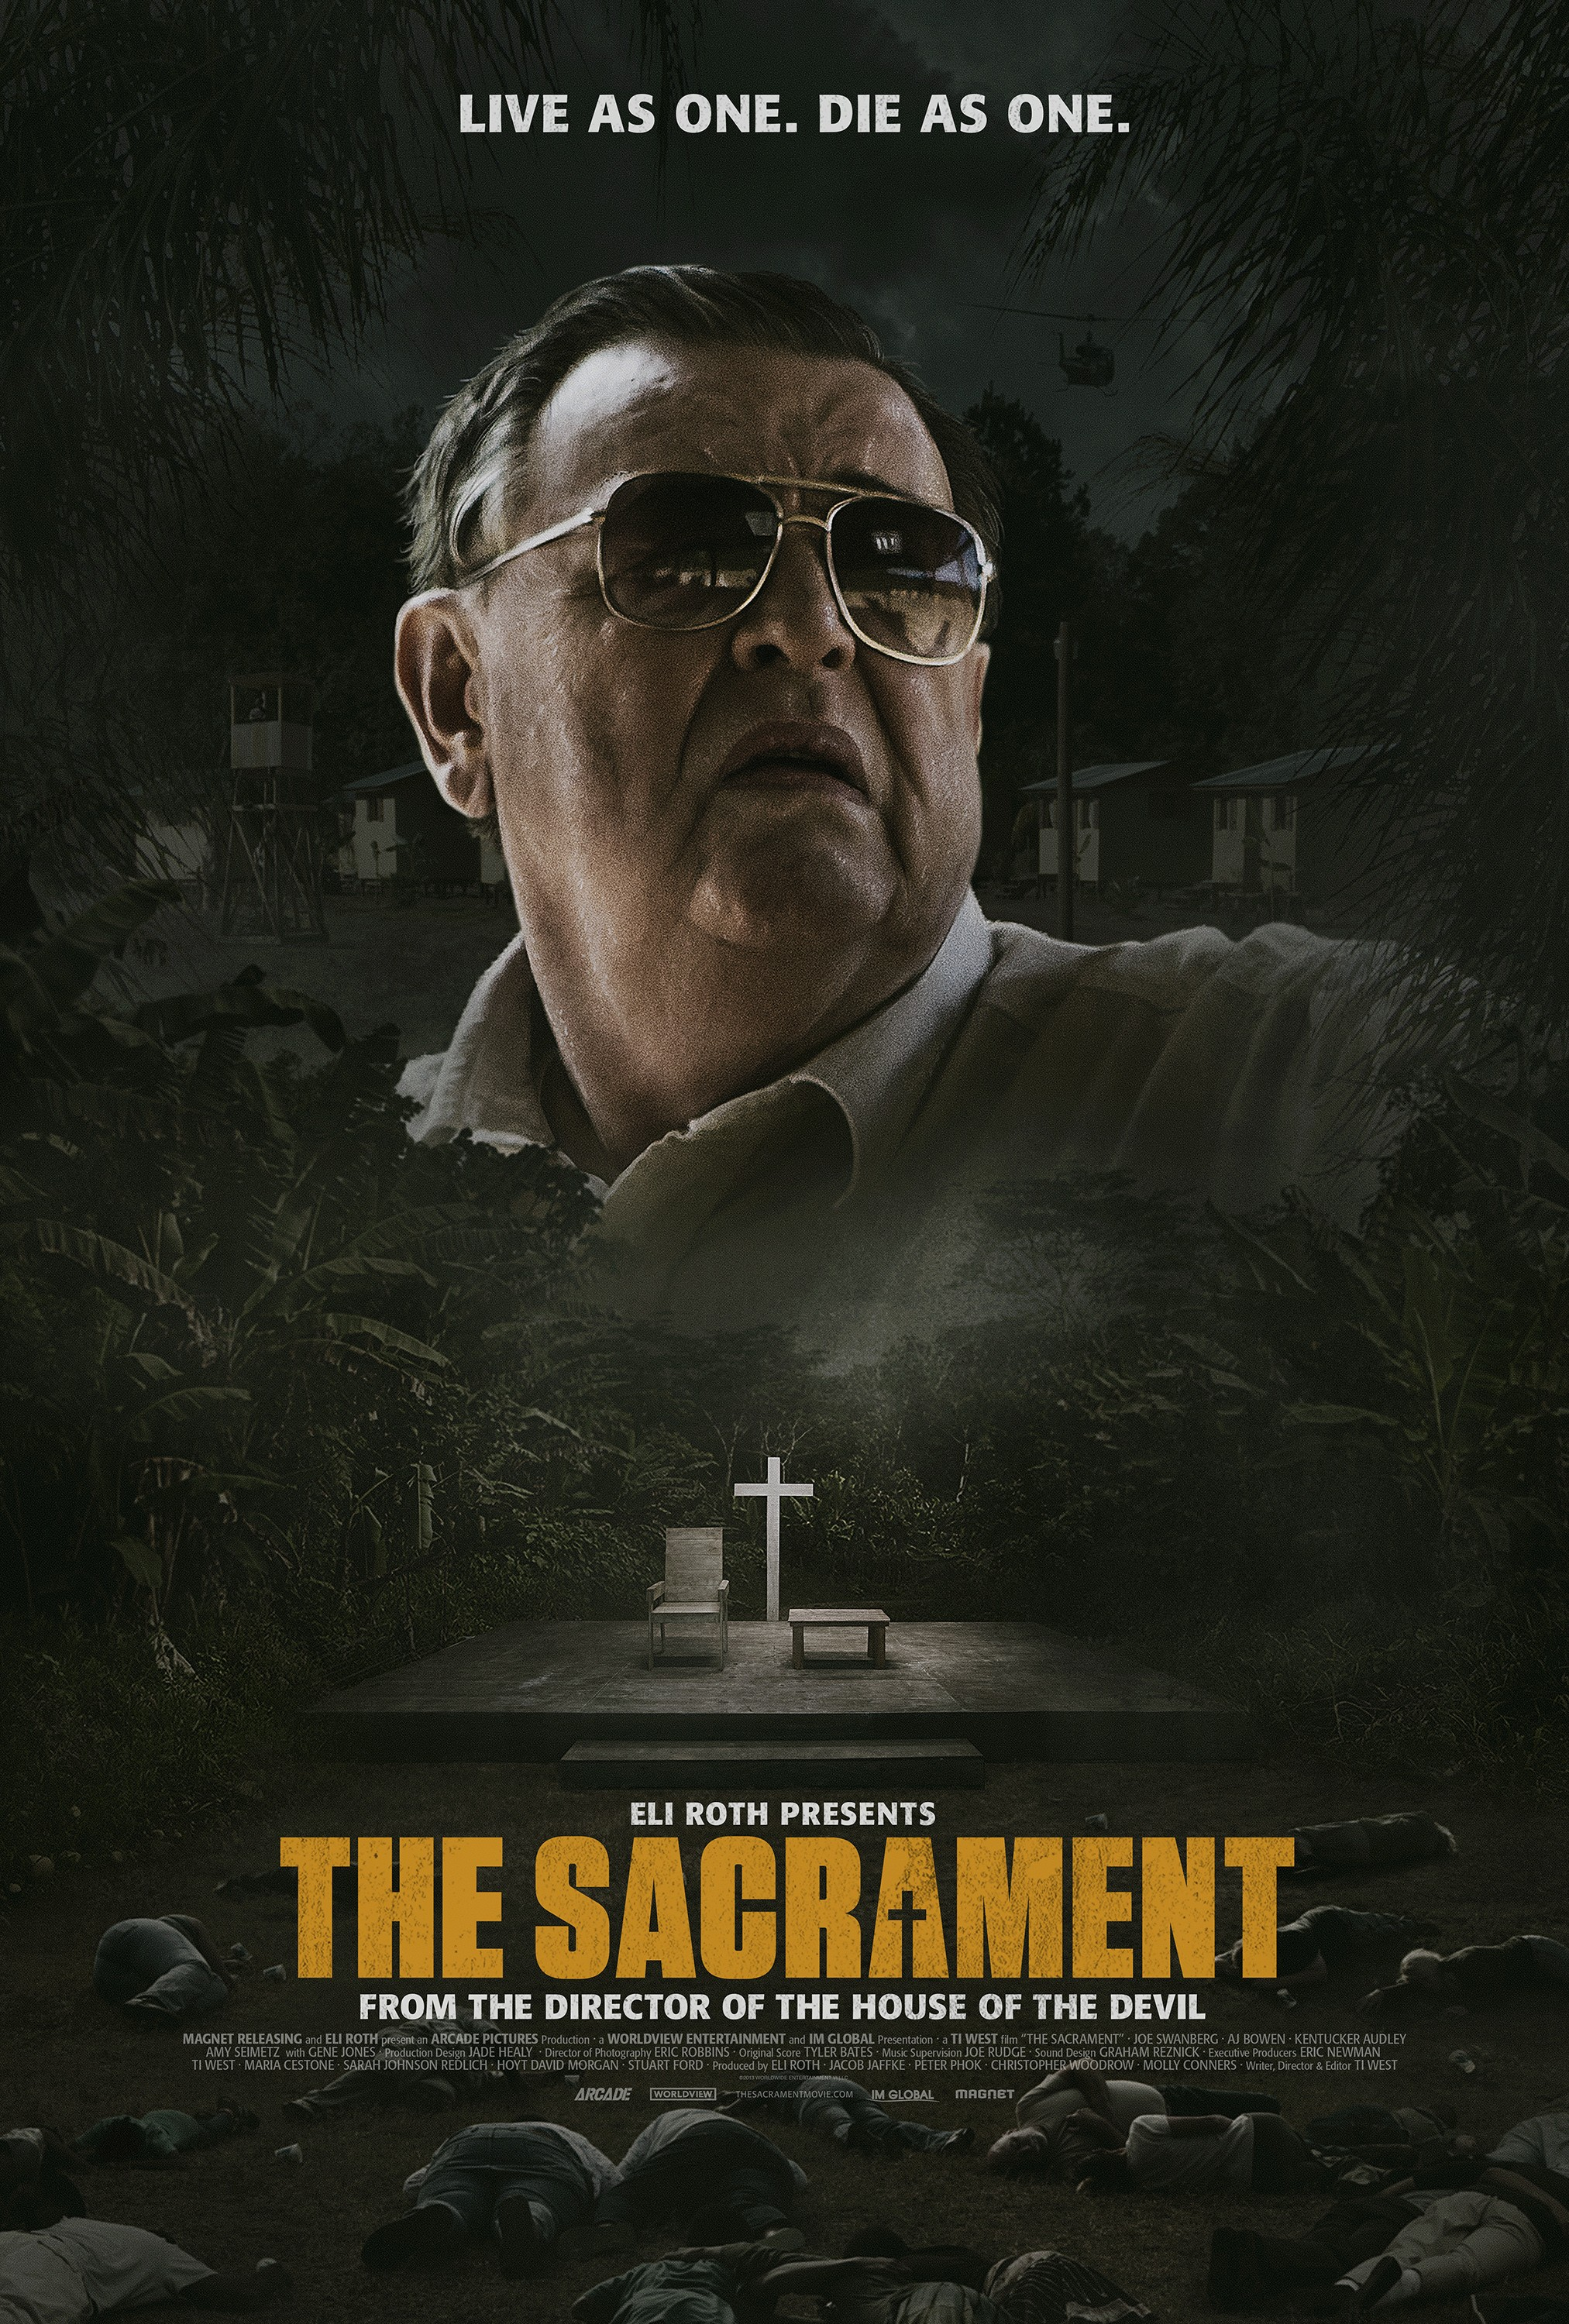 The Sacrament-Official Poster Banner PROMO POSTER XXLG-21FEVEREIRO2014